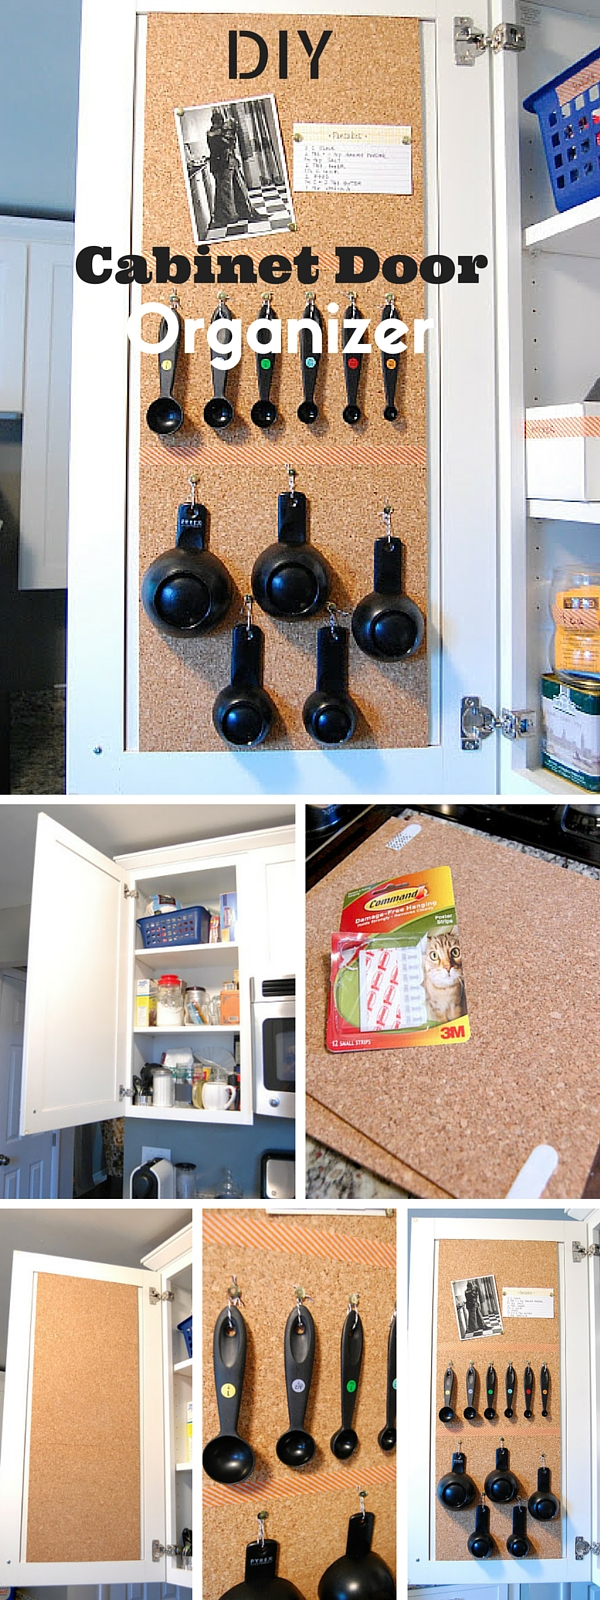 Check out the tutorial:  Cabinet Door Organizer